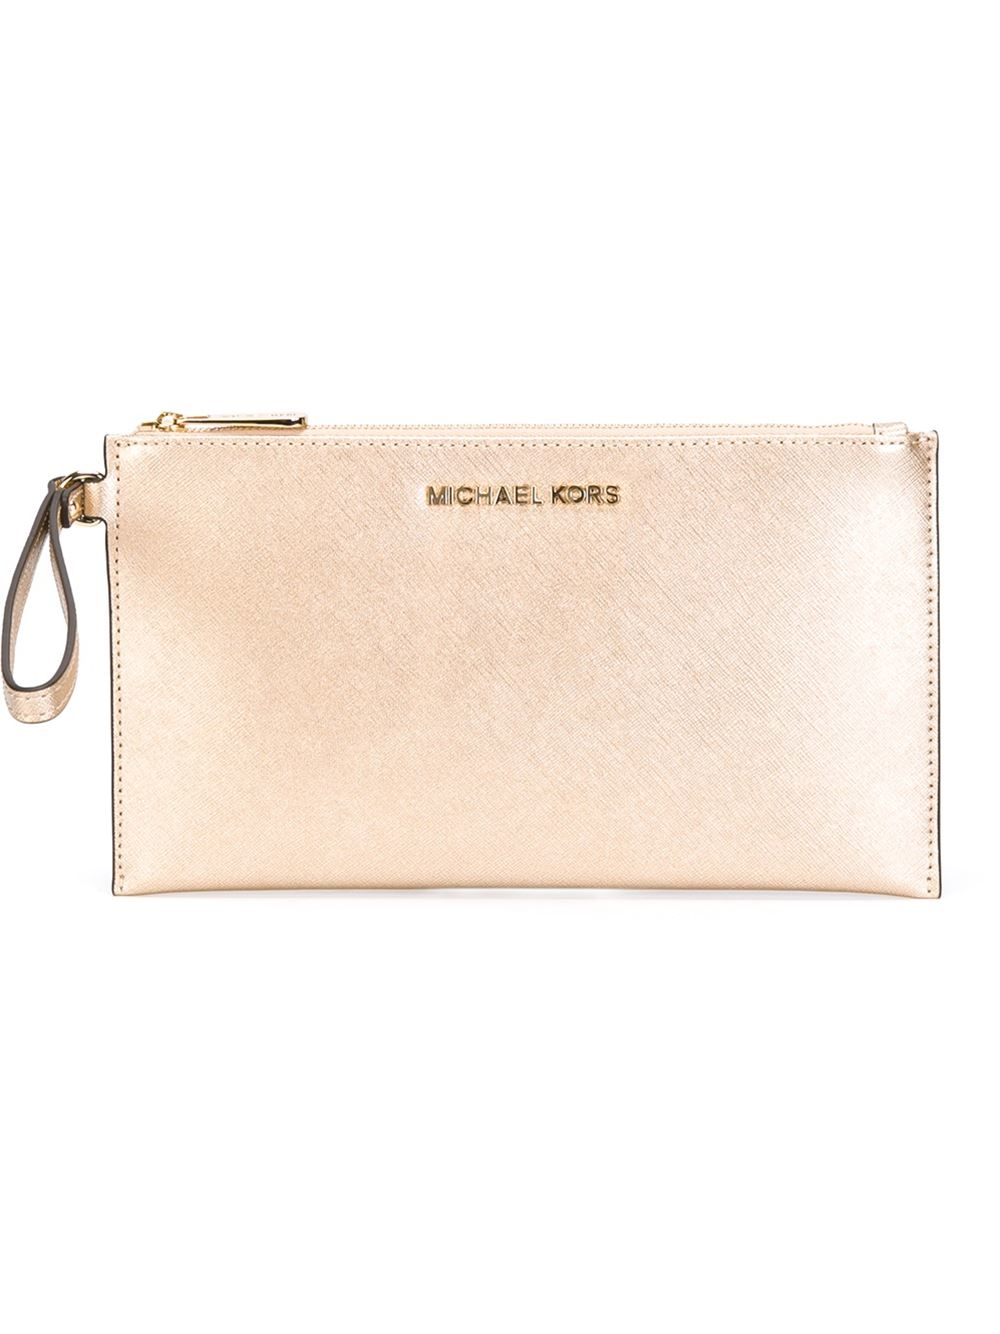 metallic zip around wallet - Nude & Neutrals Michael Michael Kors NlN03